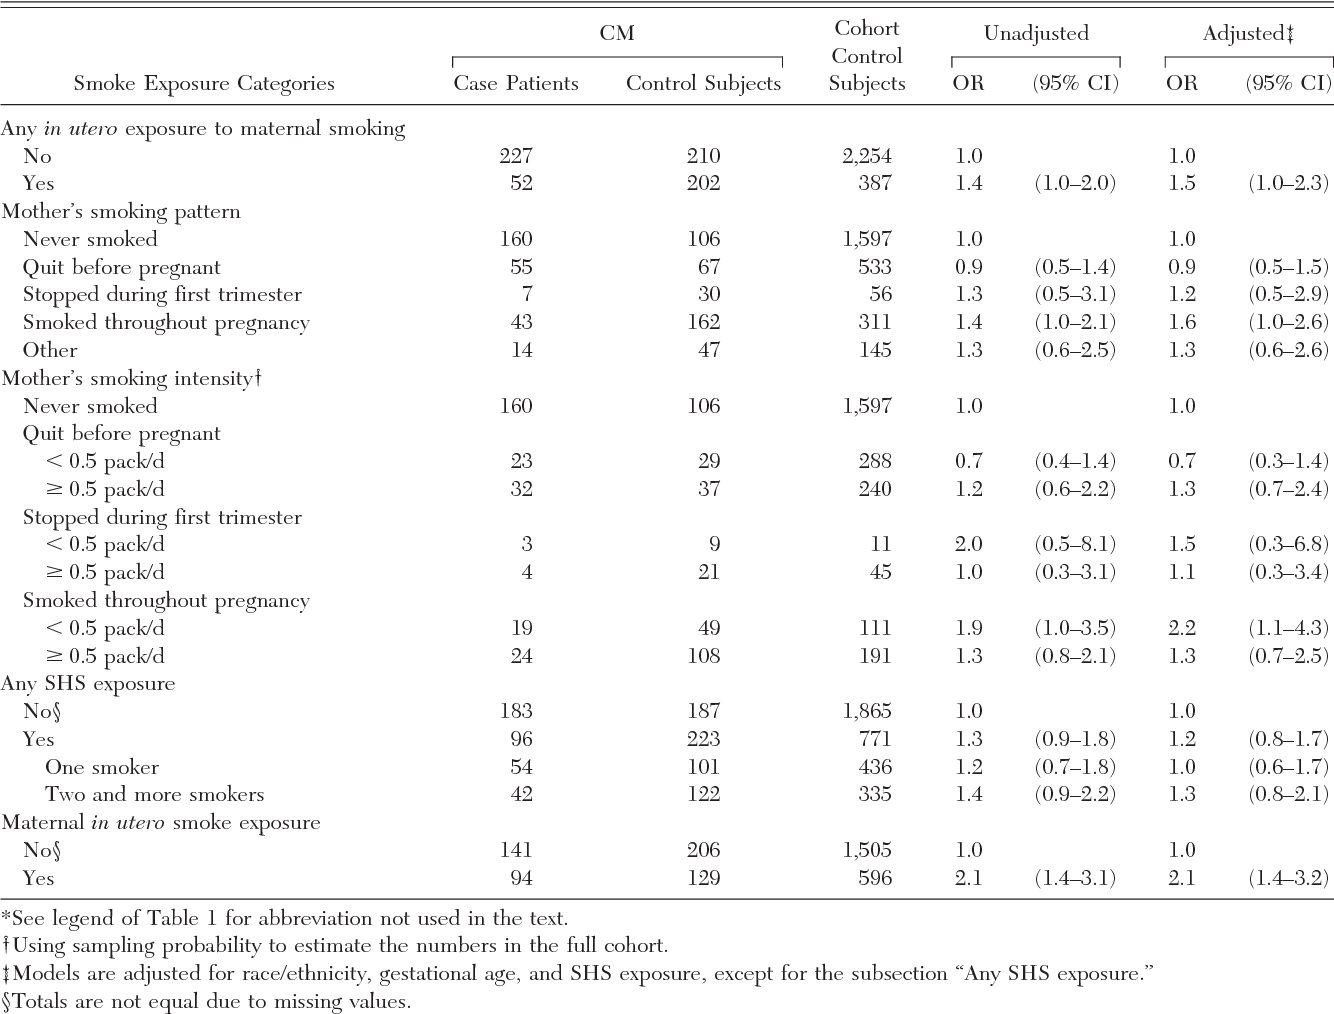 Table 2—Tobacco Smoke Exposure Patterns Among Participants, OR for Asthma and 95% CI*